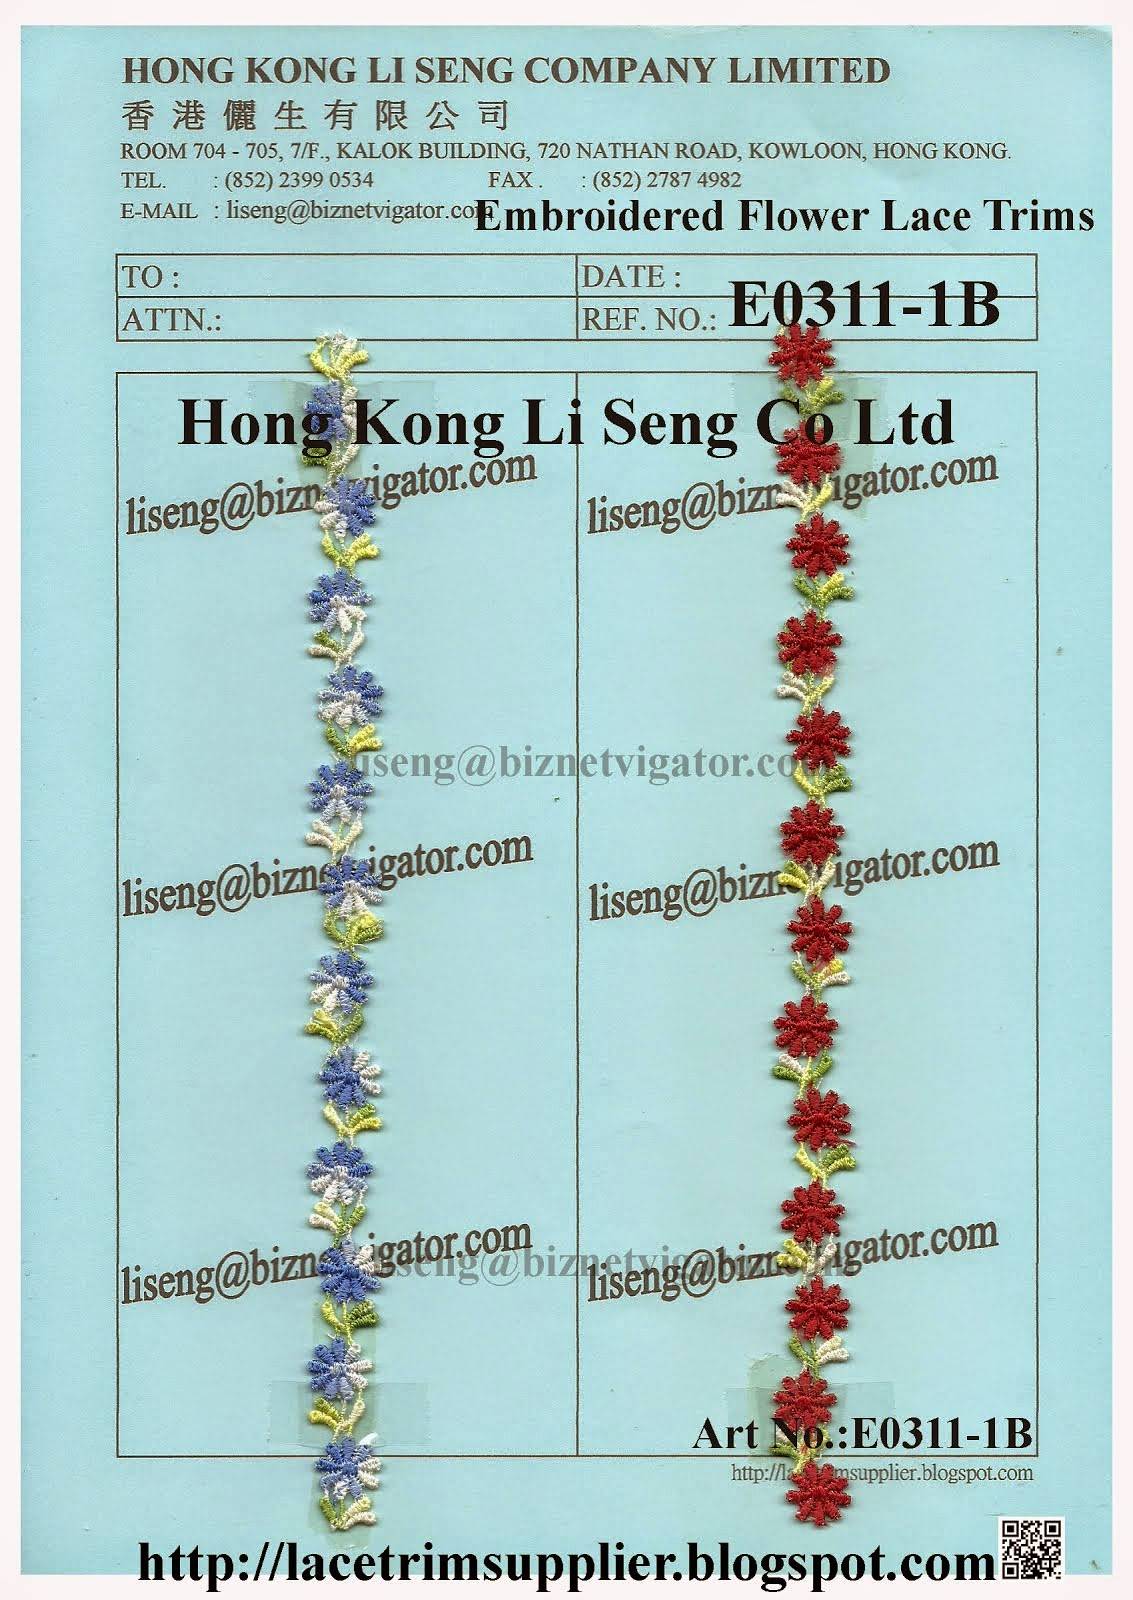 Wholesale Embroidered Flower Lace Trimming Manufacturer Supplier - Hong Kong Li Seng Co Ltd